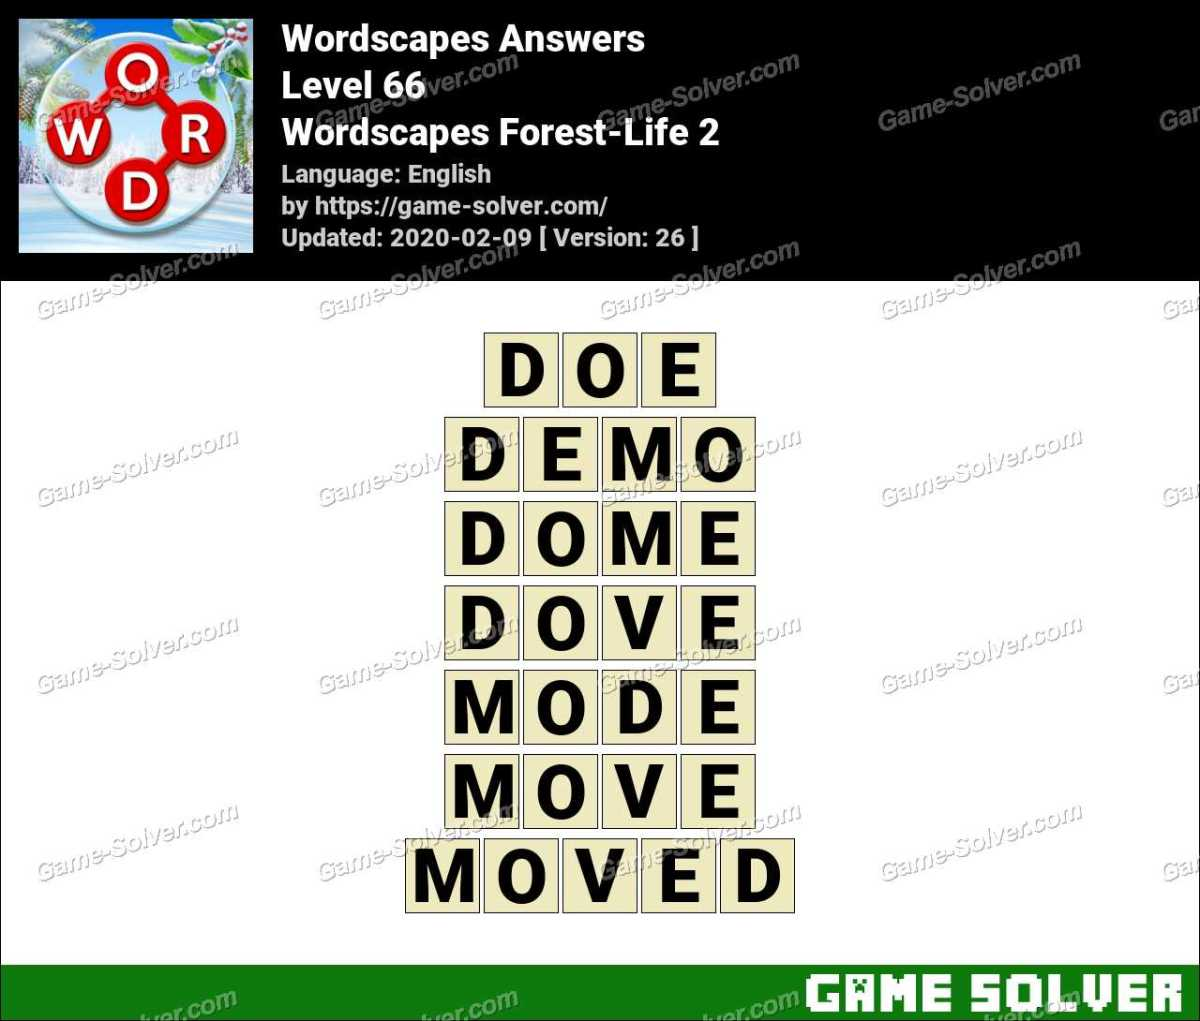 Wordscapes Forest-Life 2 Answers